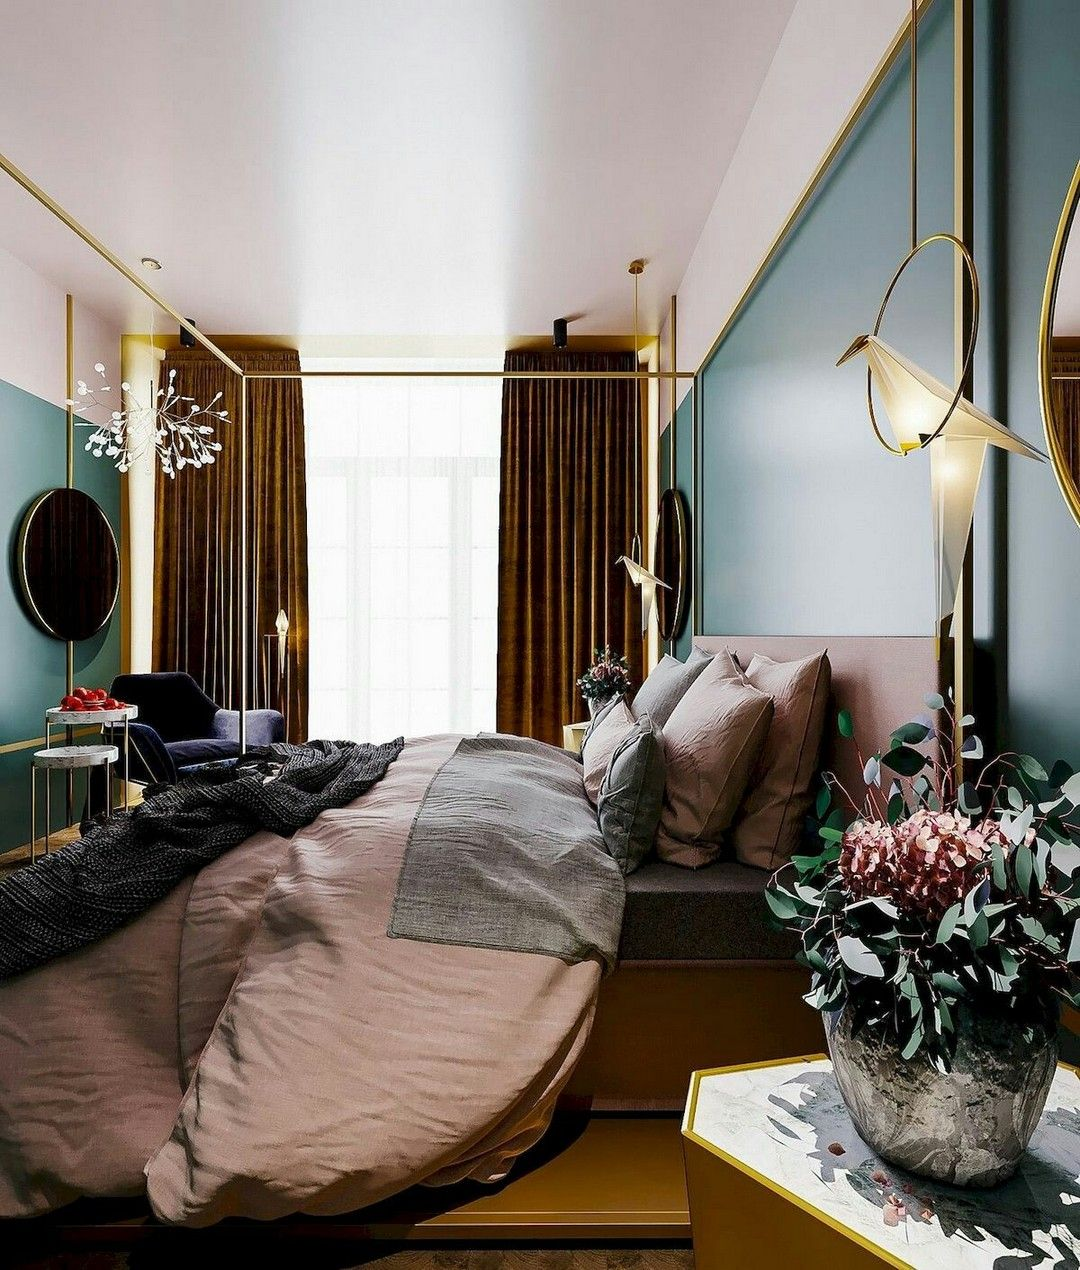 20+ relaxing bedroom lighting decoration ideas for you 4 ...